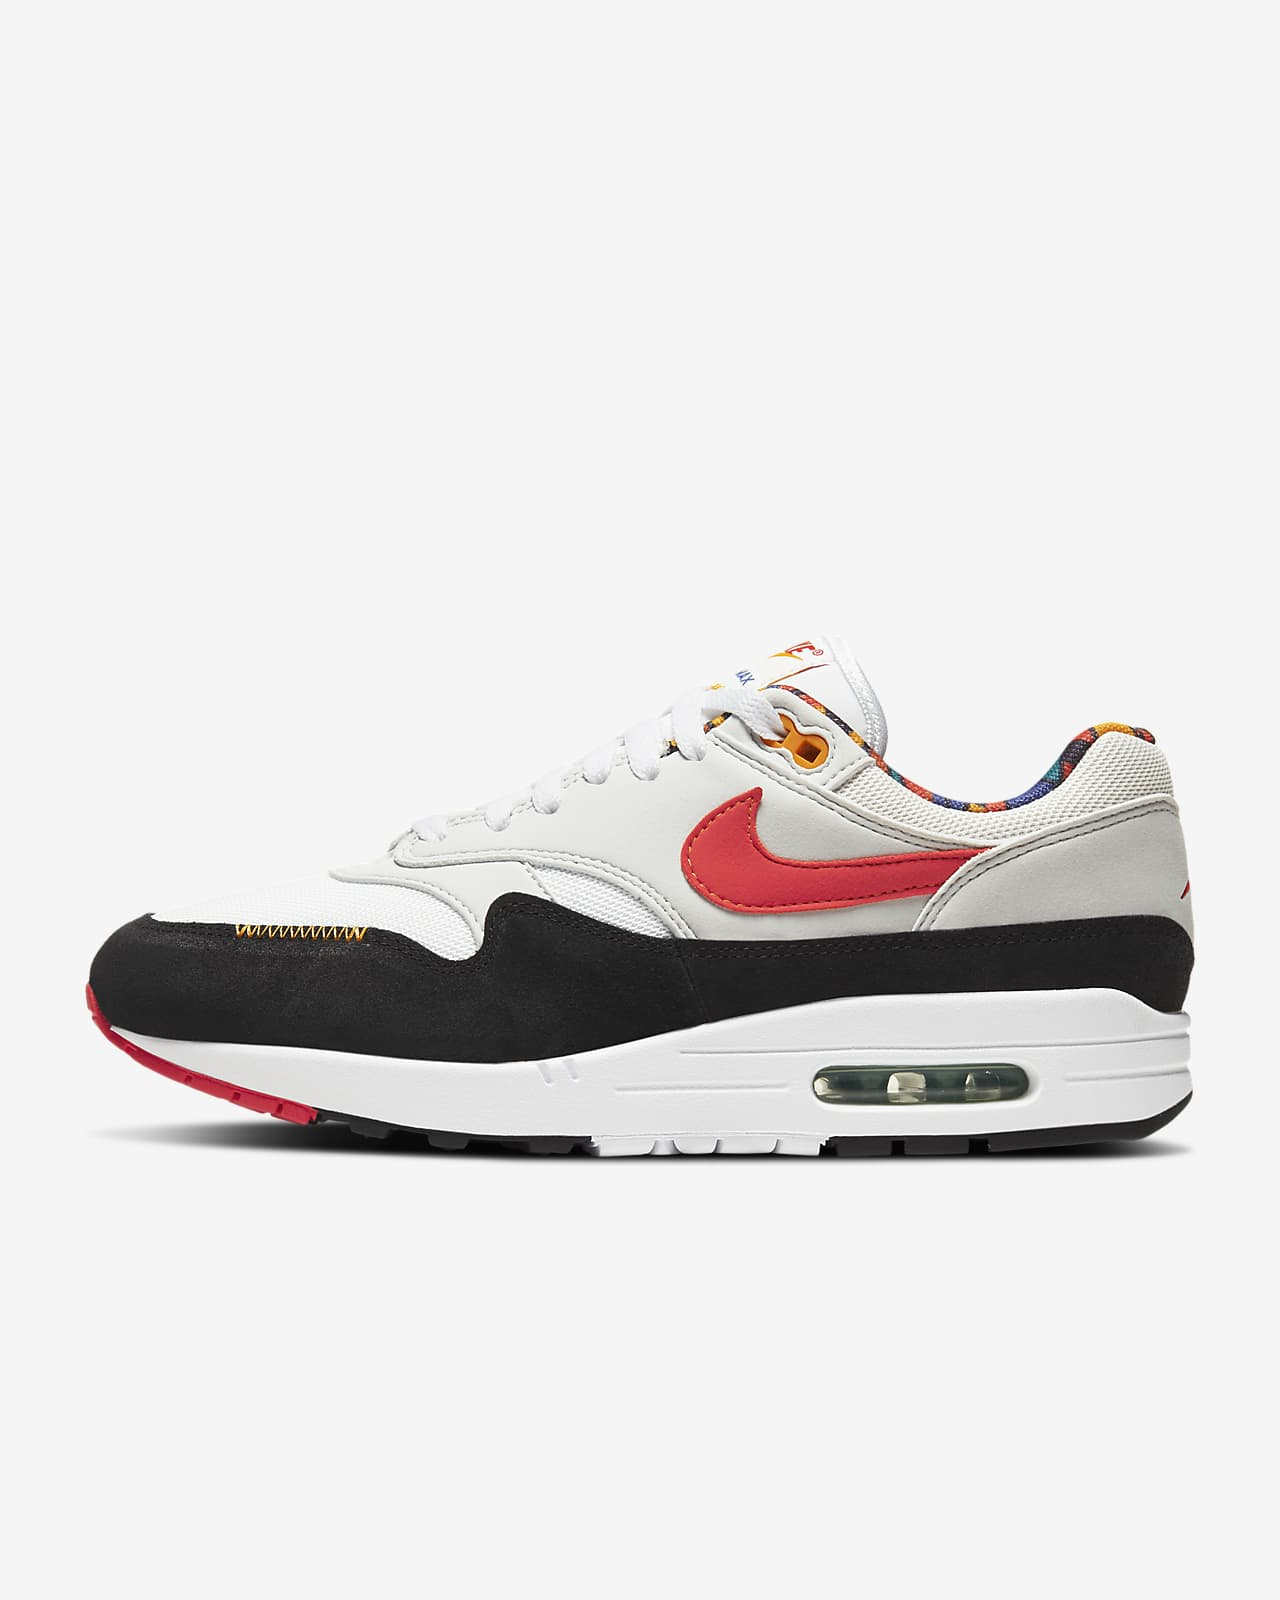 Noreste visto ropa Inocente  Nike Air Max 1 Men's Shoe. Nike.com